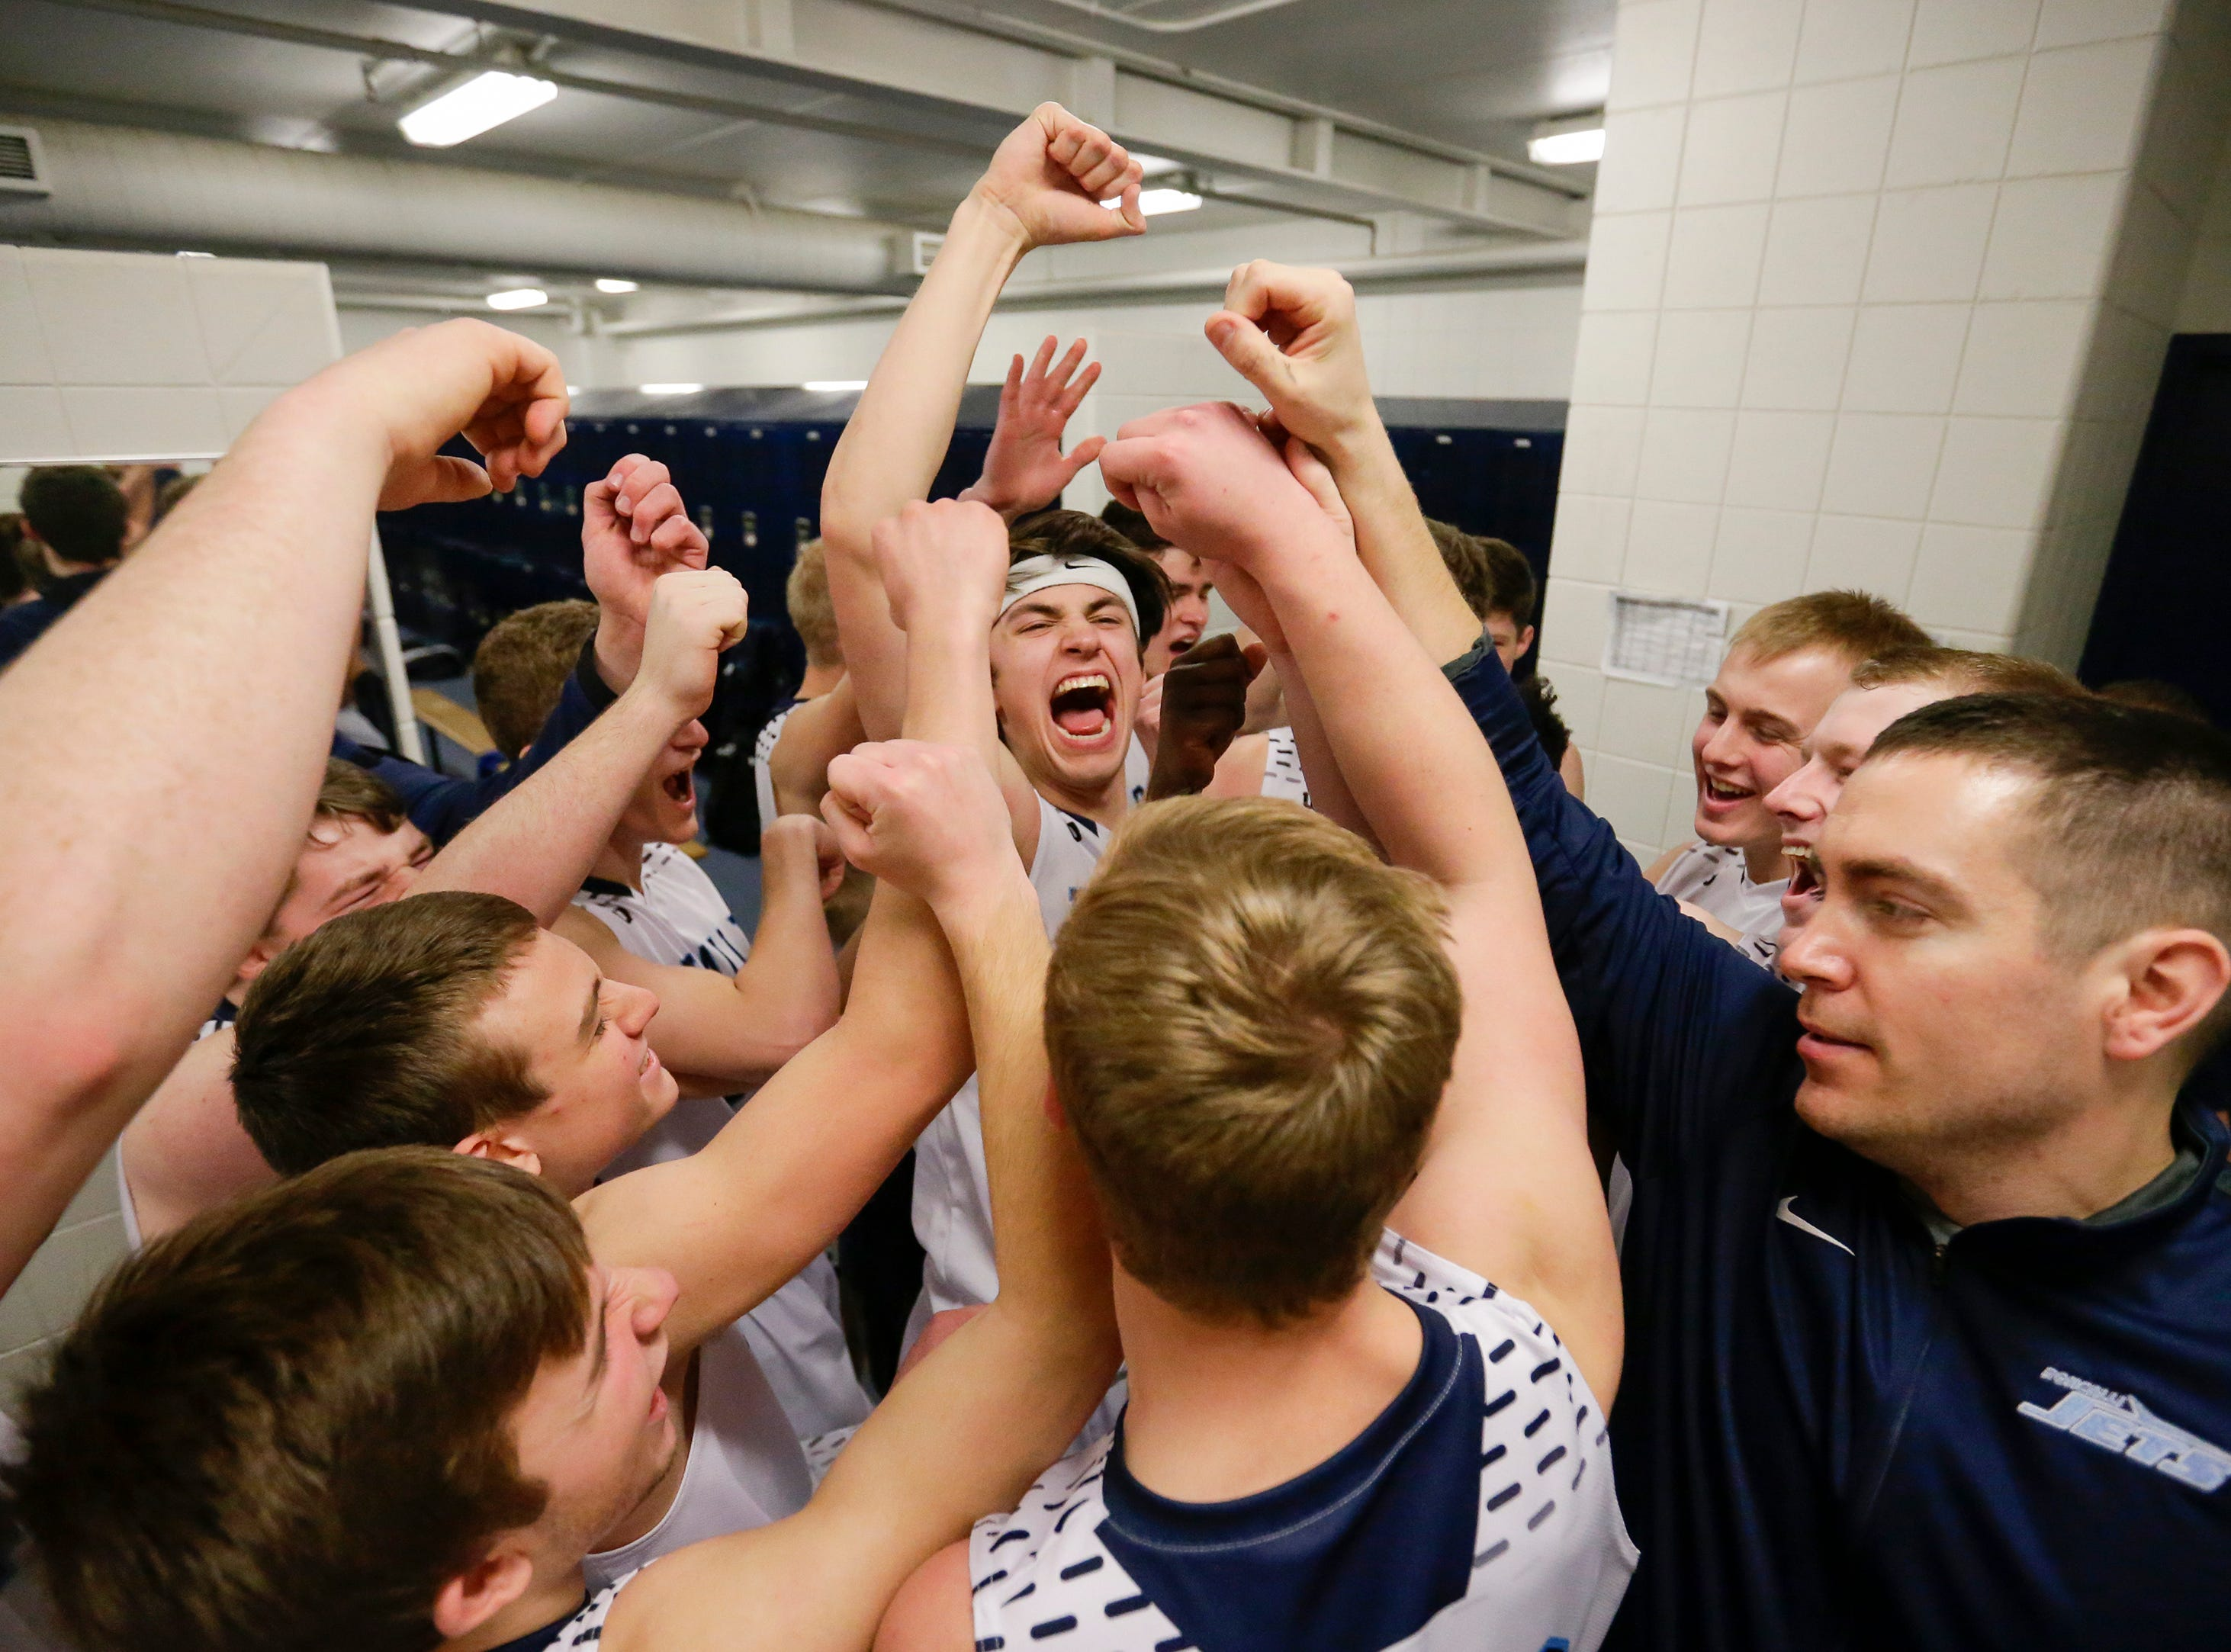 Roncalli cheers in the locker room after defeating Milwaukee Academy of Science in a WIAA Division 4 sectional championship at Sheboygan North High School Saturday, March 9, 2019, in Sheboygan, Wis. Joshua Clark/USA TODAY NETWORK-Wisconsin